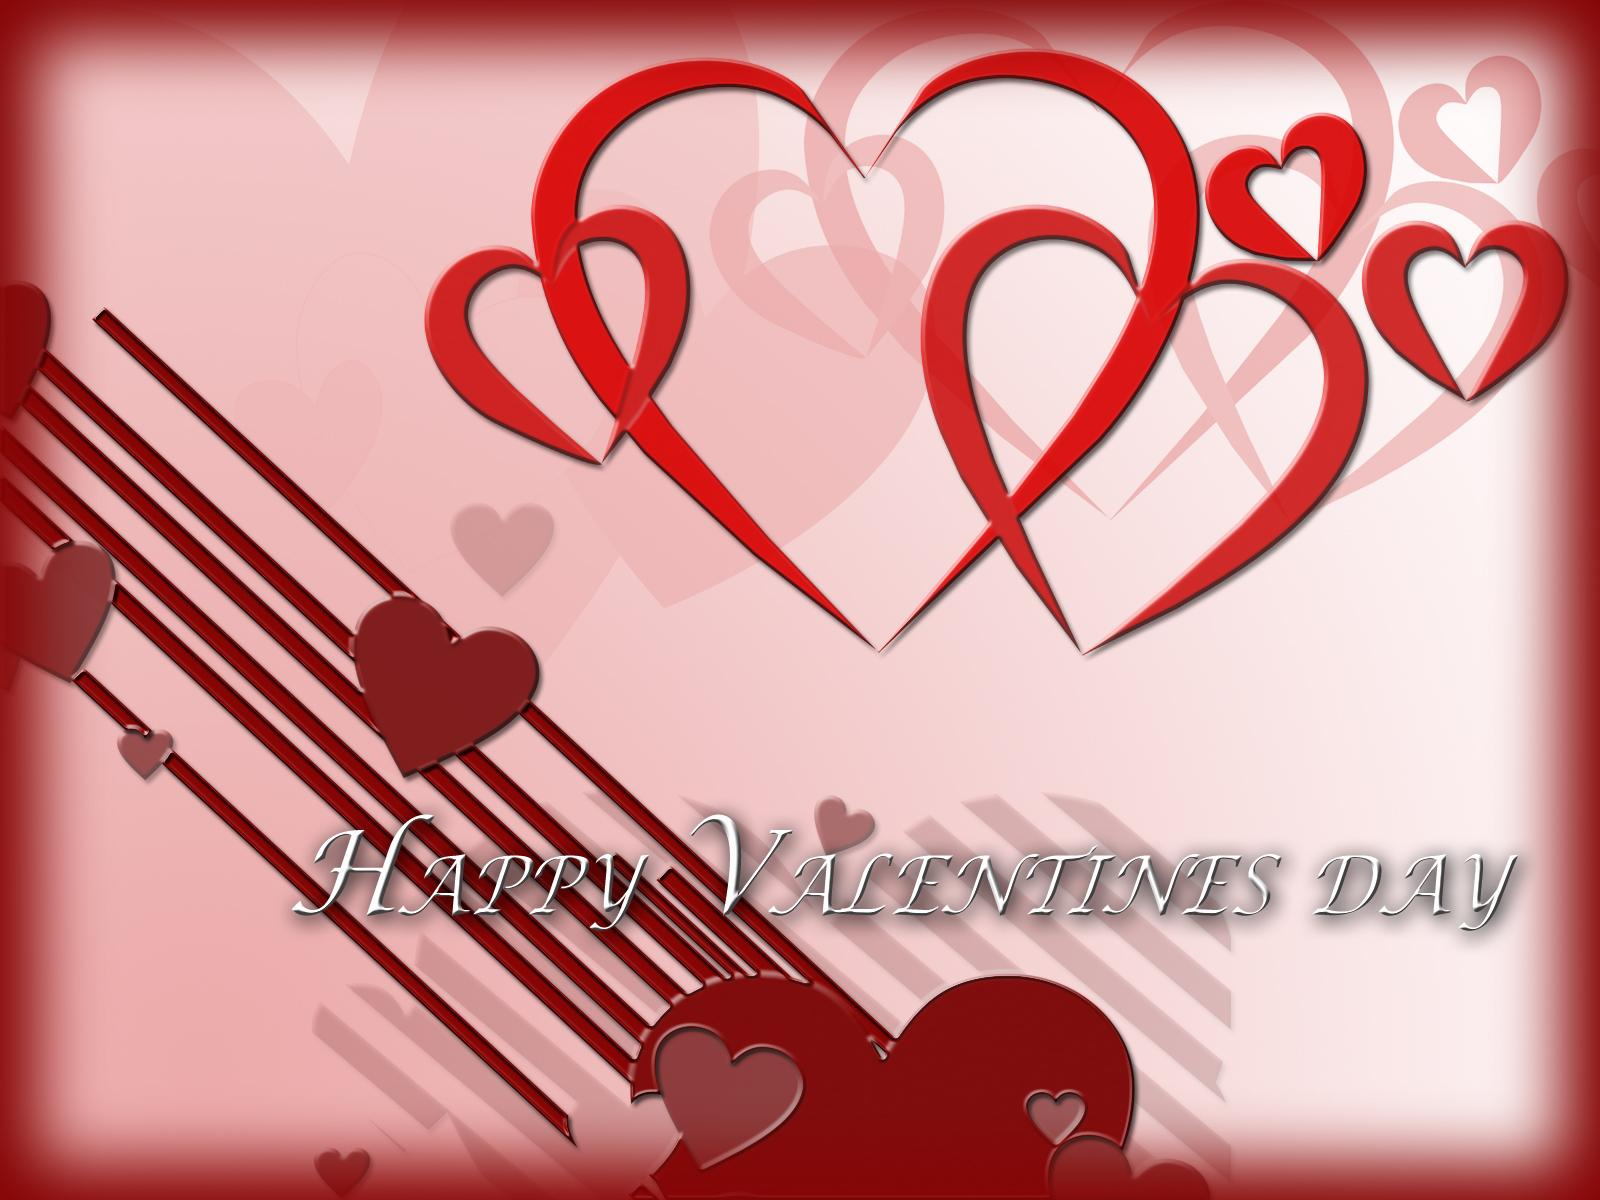 Download Valentine Wallpaper 1600x1200